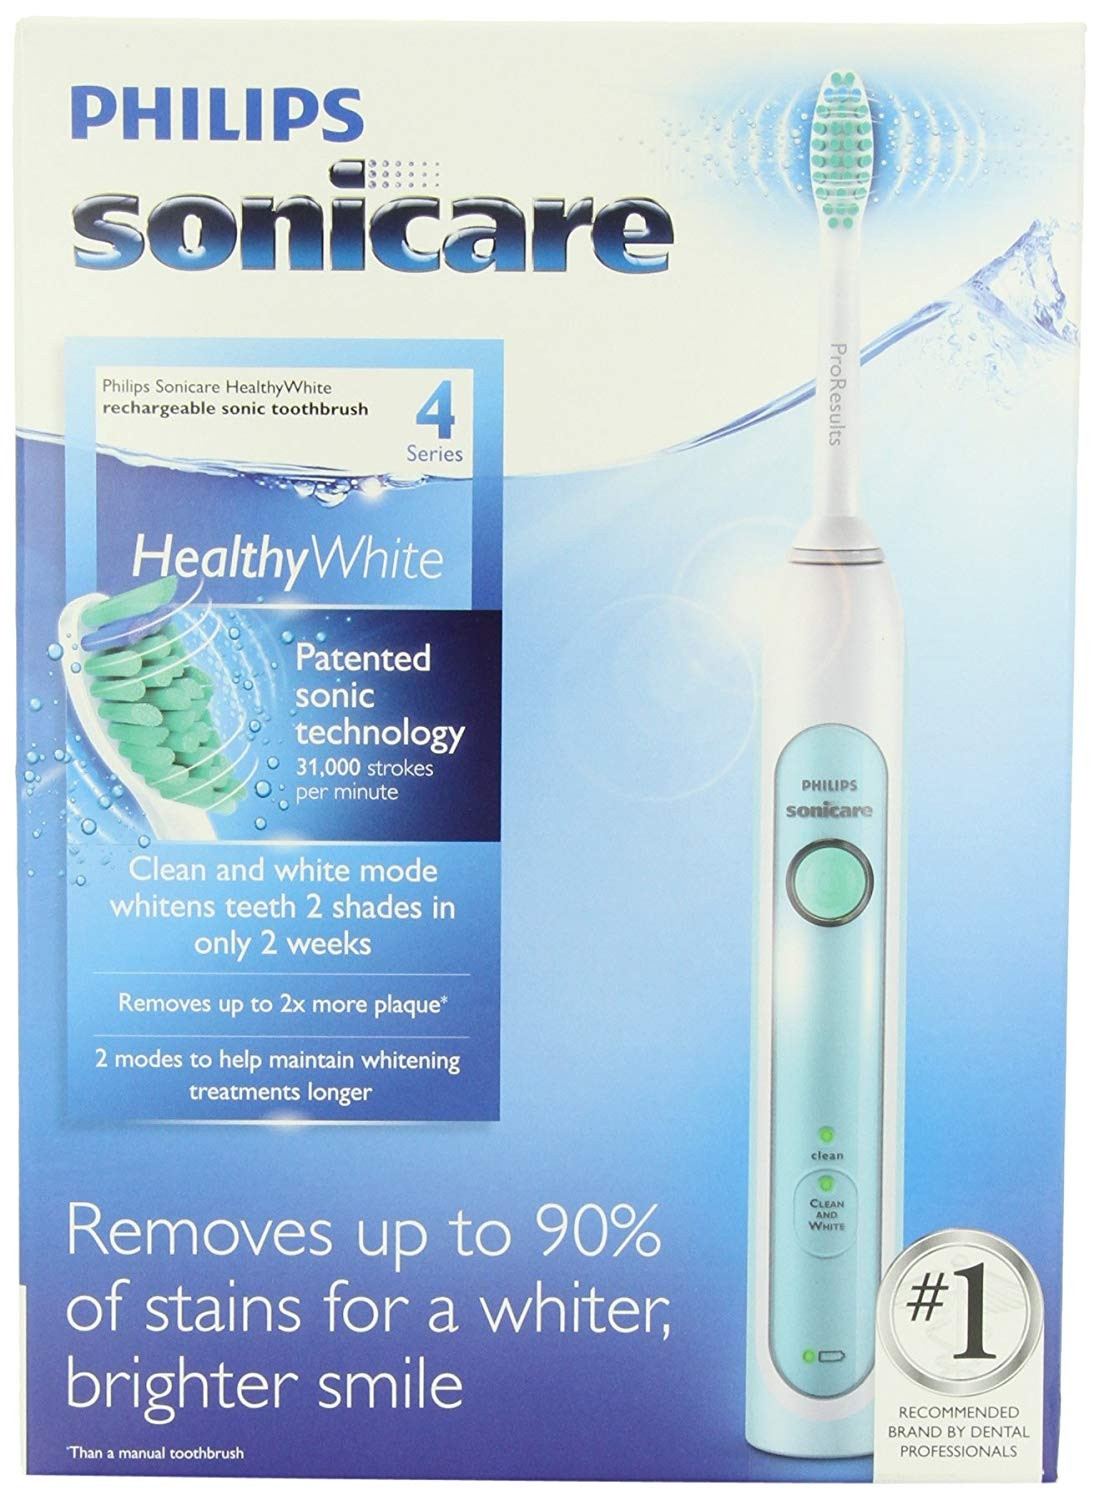 PHILIPS SONICARE TOOTHBRUSH HEALTHY WHITE RECHARGEABLE